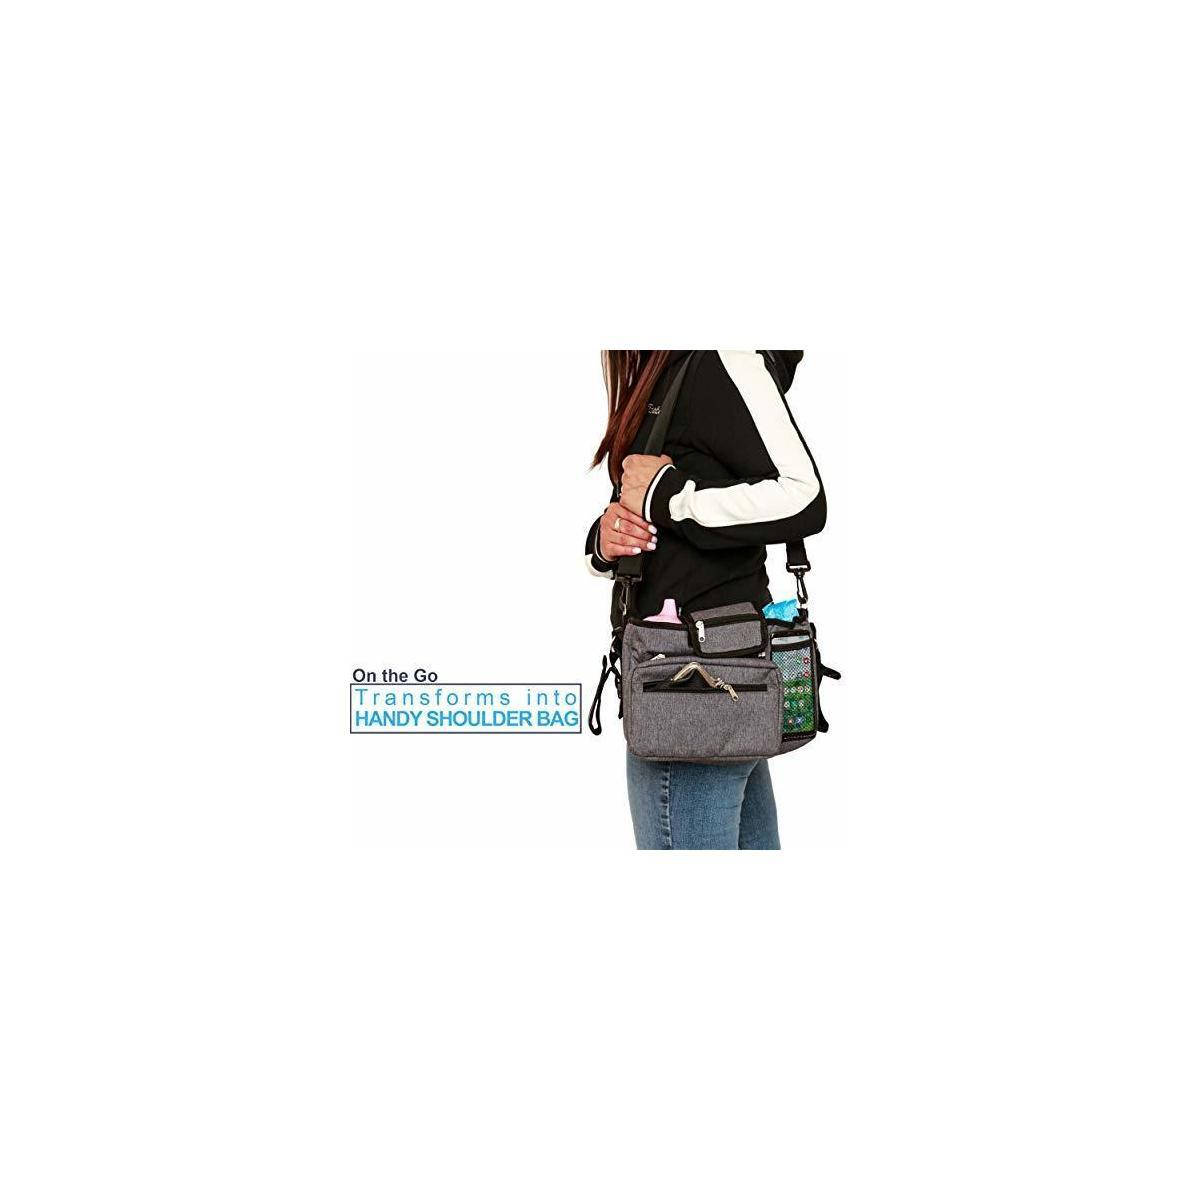 Deluxe Baby Stroller Organizer with Non-Slip Straps for Universal Fit. Spacious and Versatile – turns into Shoulder Bag or Clutch – includes Insulated Cup Holder, Customizable Storage